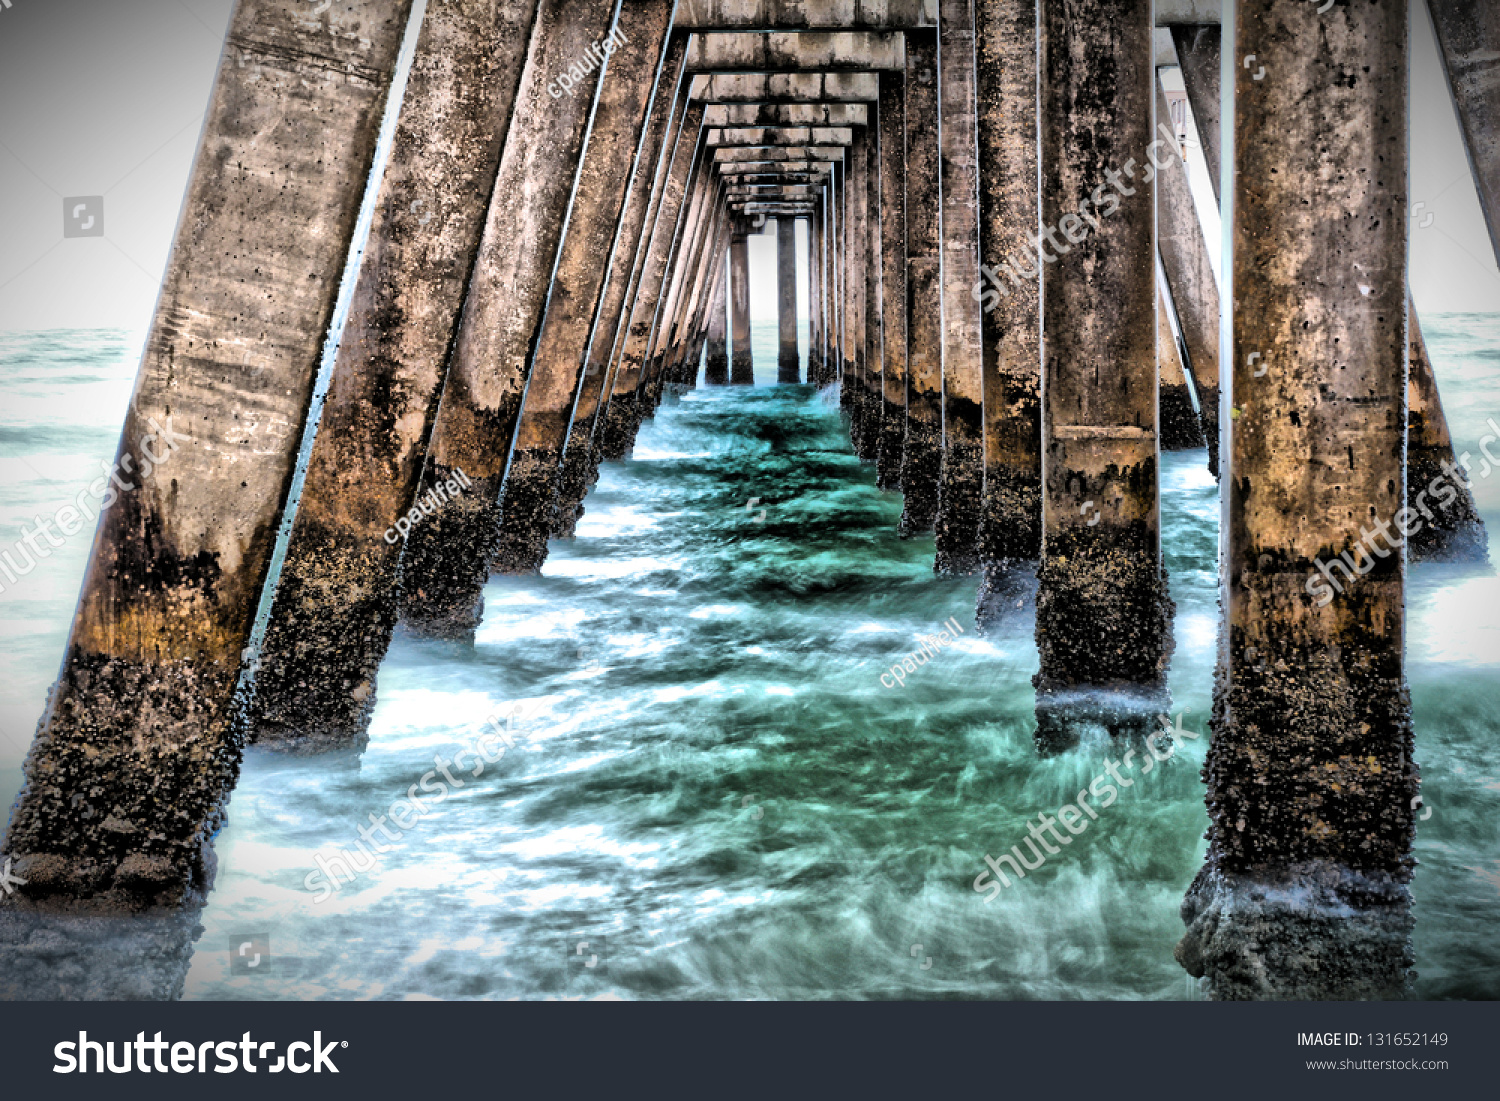 stock-photo-under-the-pier-in-the-early-